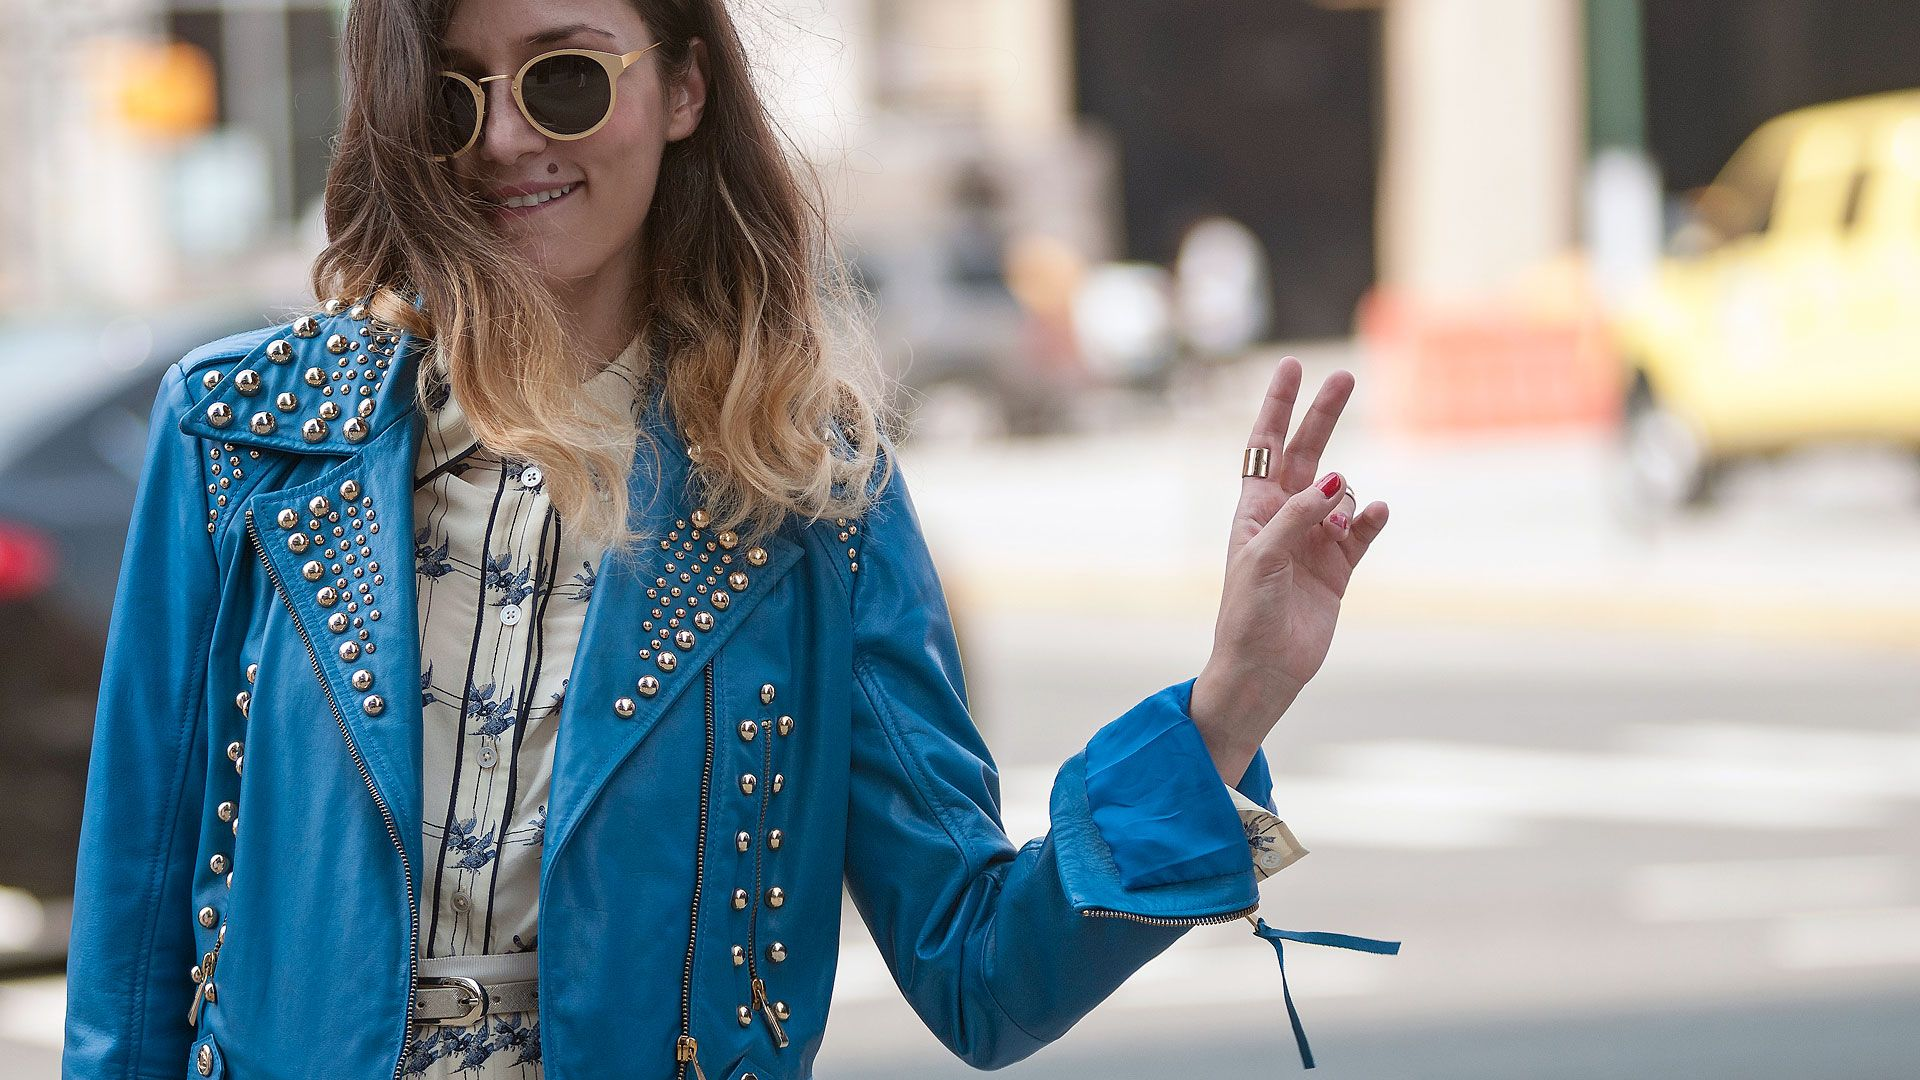 f6aade0f15 Street Style at Spring 2014 Fashion Week - NYFW Street Style Pictures